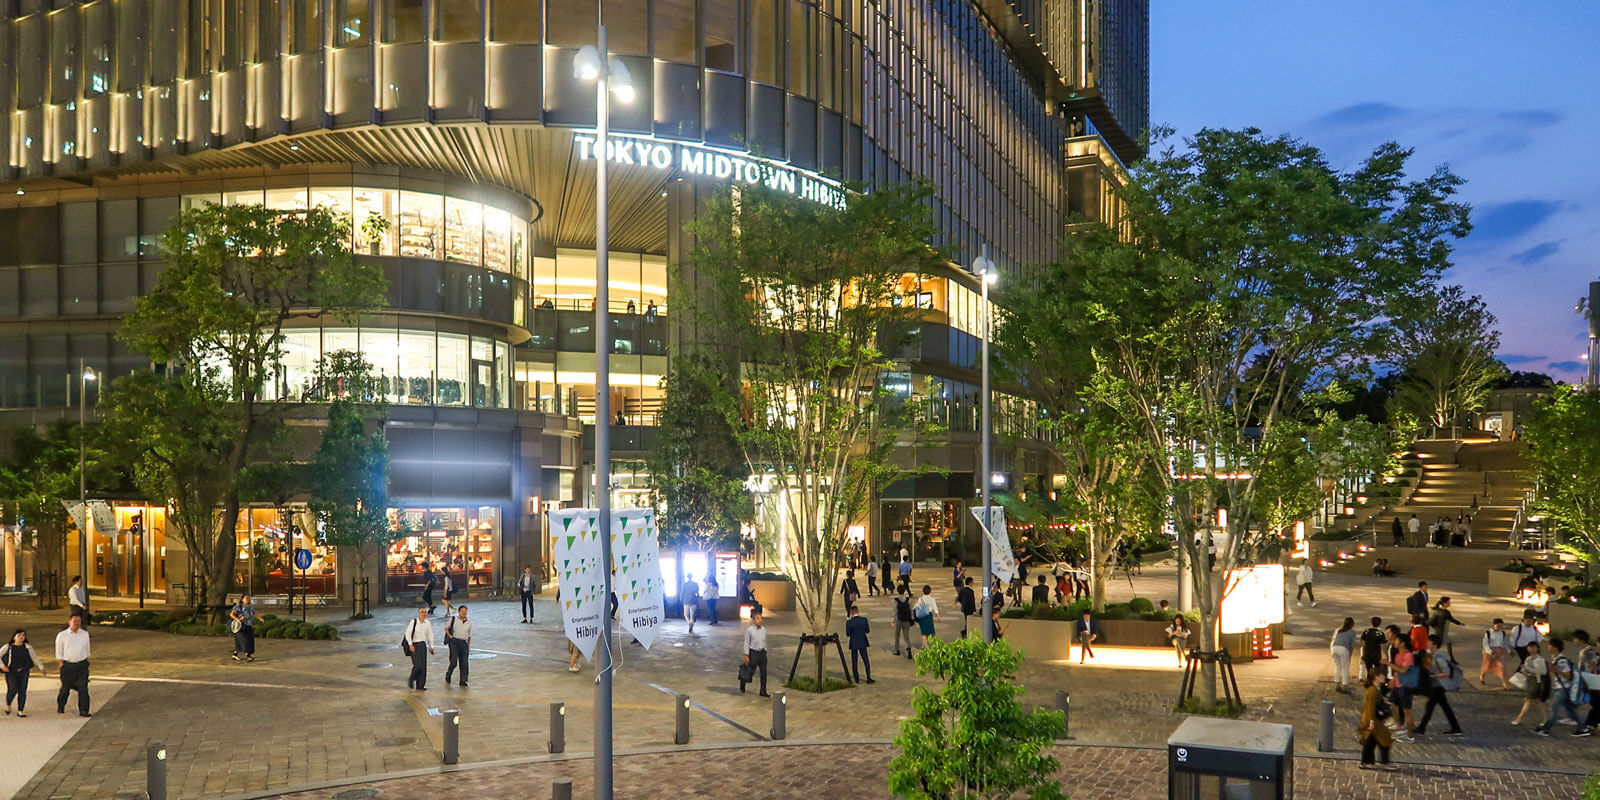 Hibiya Festival Returns with New Twist after Two Years